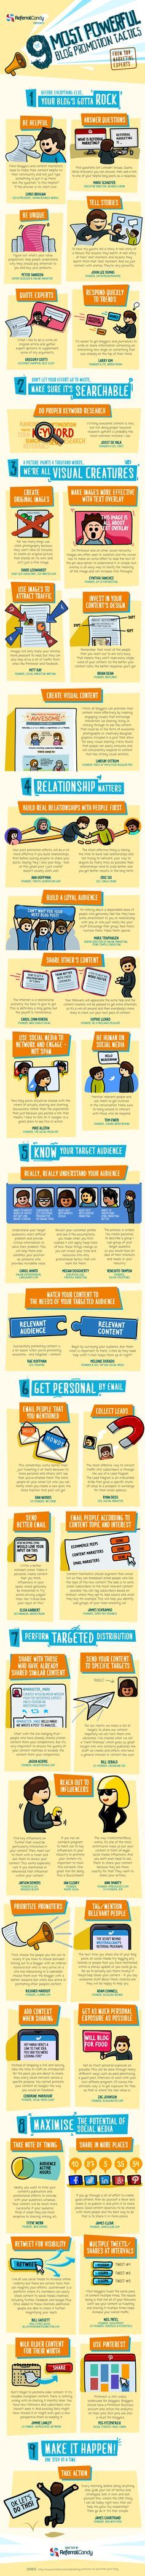 Very Helpful: The 9 Most Powerful Promotion Tactics From Top Marketing Experts [Infographic] - ReferralCandy Inbound Marketing, Marketing Digital, Marketing Mail, Marketing Online, Marketing Tactics, Marketing Automation, Affiliate Marketing, Content Marketing, Internet Marketing